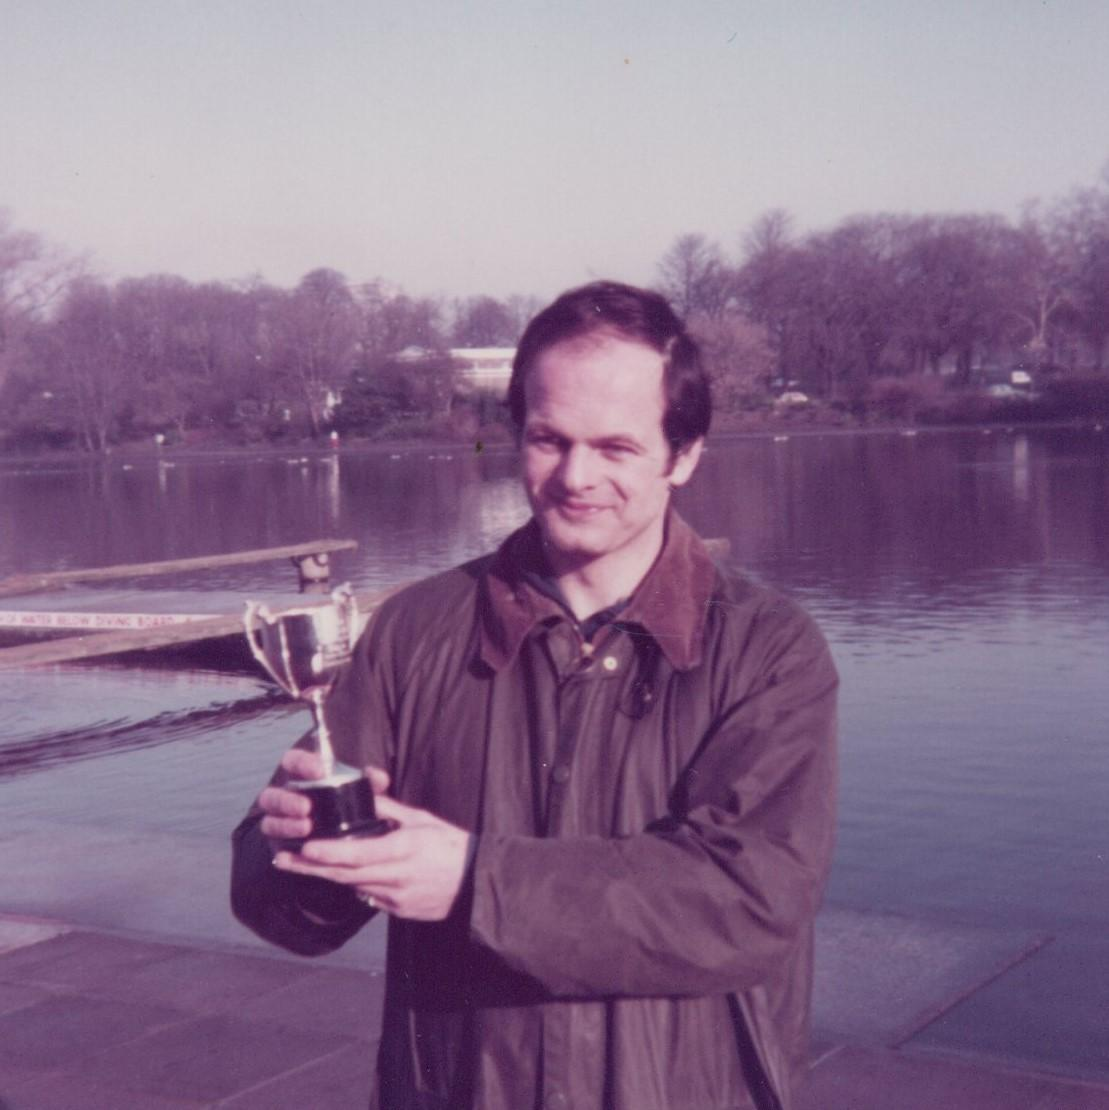 1981 Peter Pan cup, swum on 27 February 1982